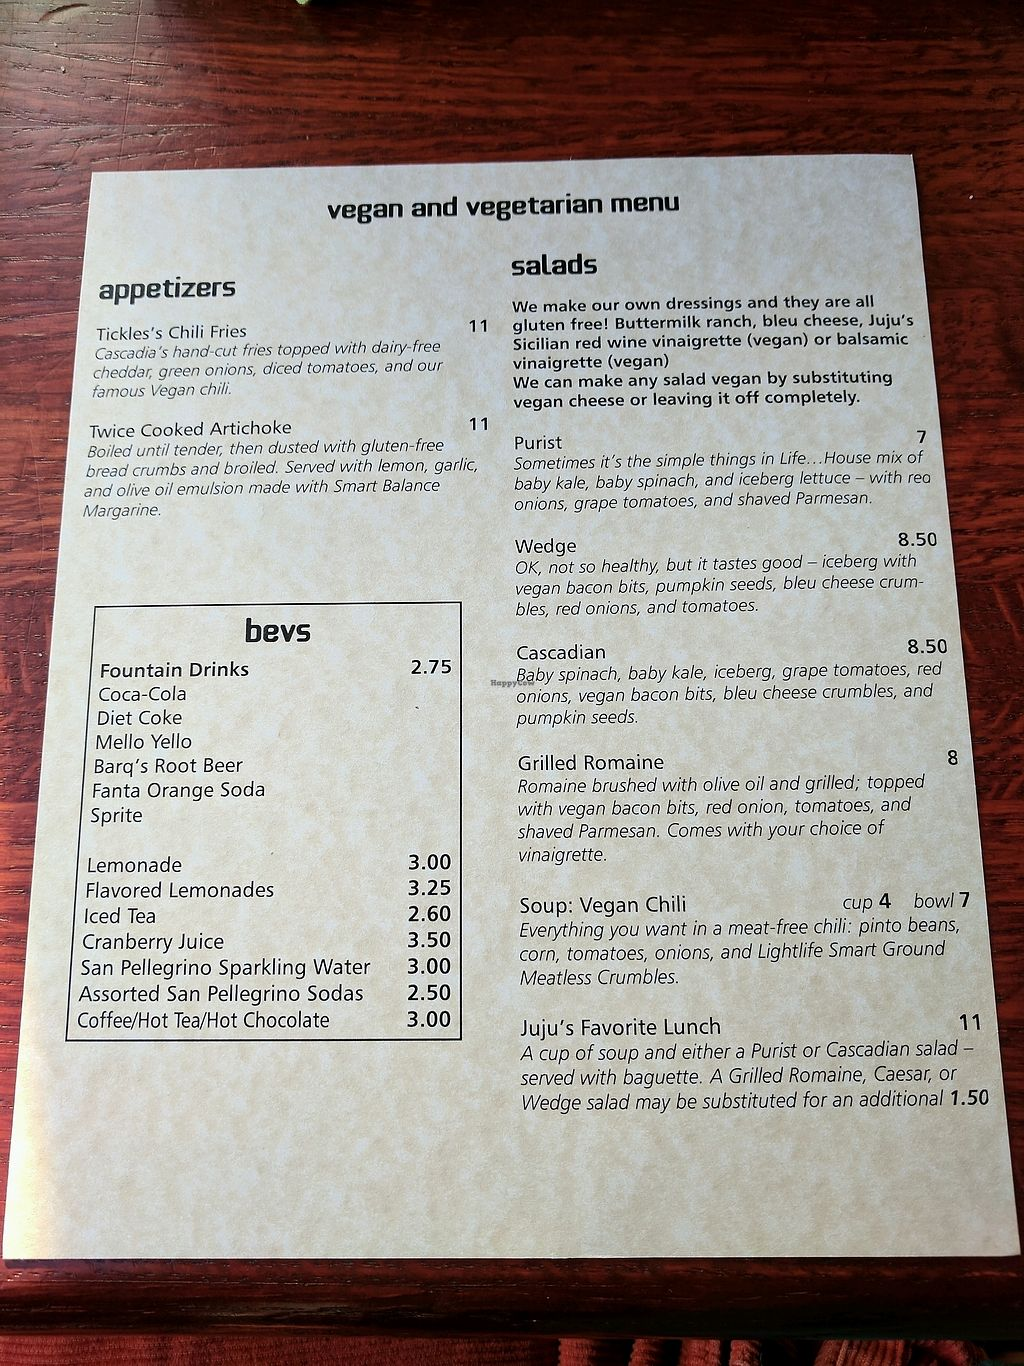 """Photo of Cascadia Grill  by <a href=""""/members/profile/Em%20C"""">Em C</a> <br/>veg menu <br/> January 18, 2018  - <a href='/contact/abuse/image/108540/347860'>Report</a>"""